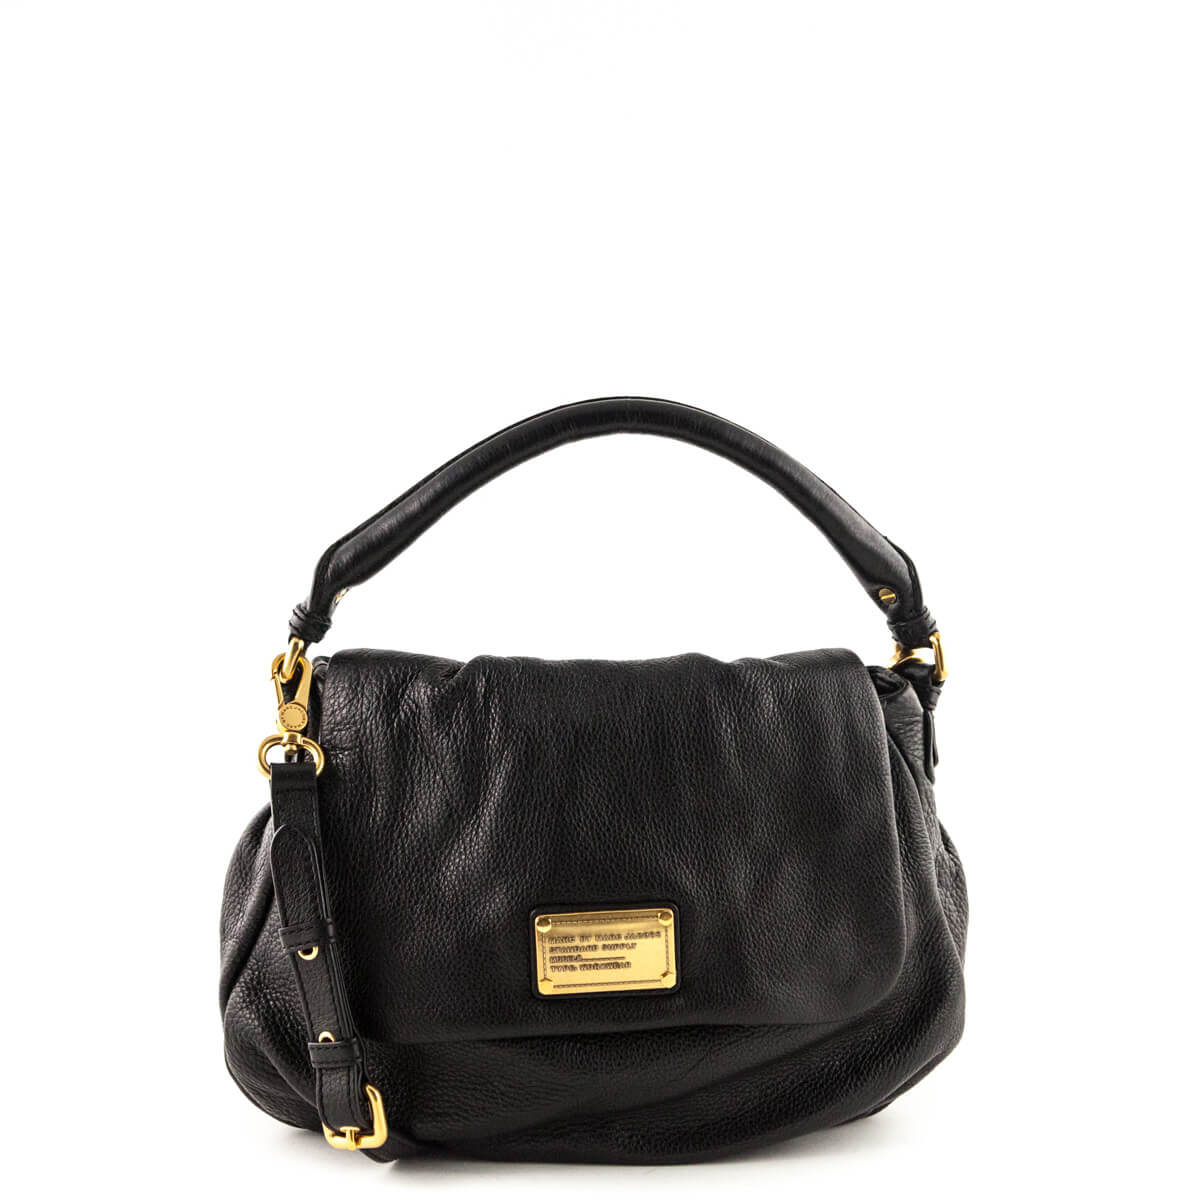 6476a1c136b8 Marc by Marc Jacobs Black Lil Ukita - LOVE that BAG - Preowned Authentic  Designer Handbags ...